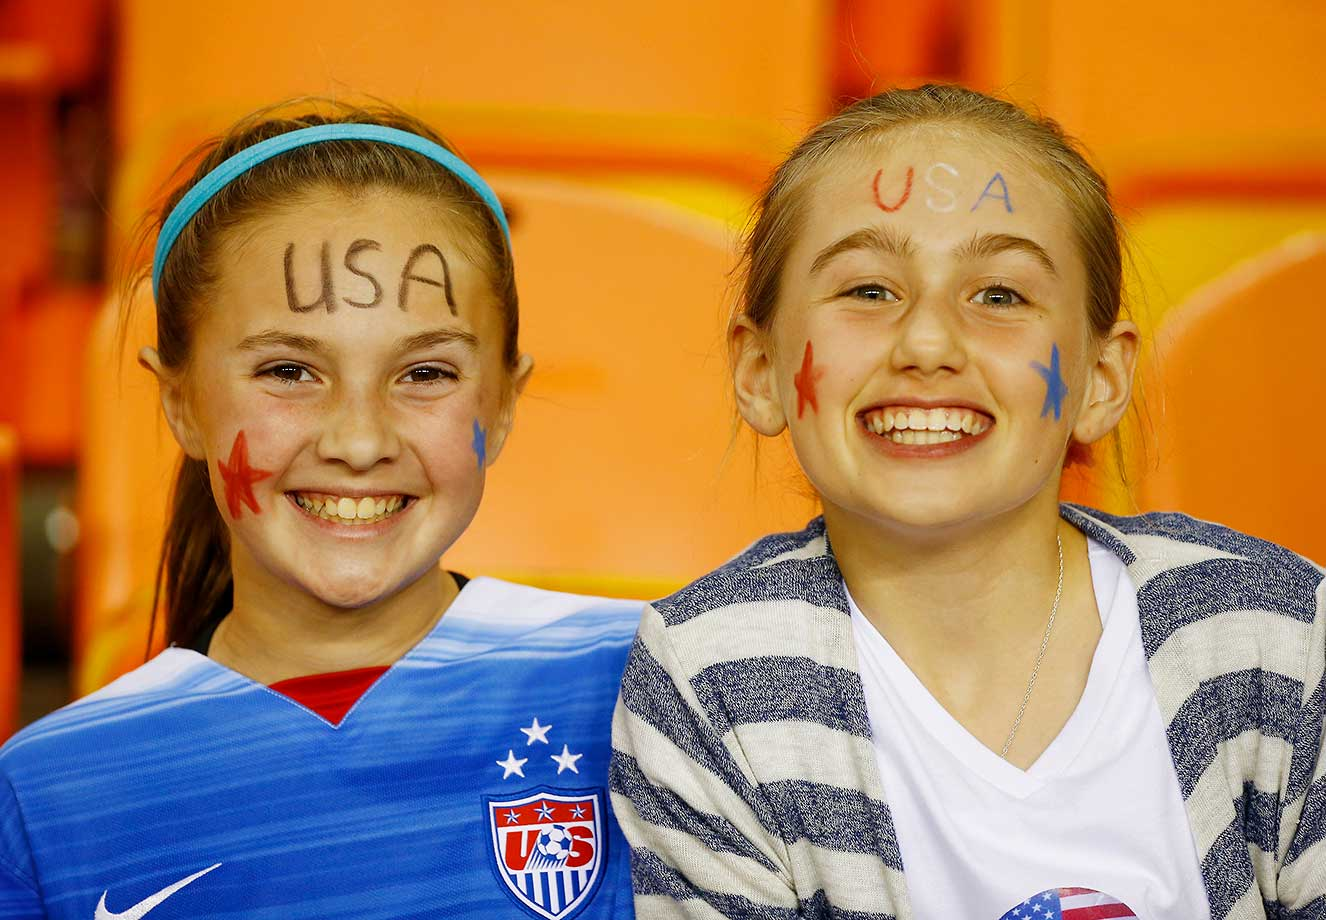 Fans of the United States women's soccer team at the game against Trinidad and Tobago in Houston.